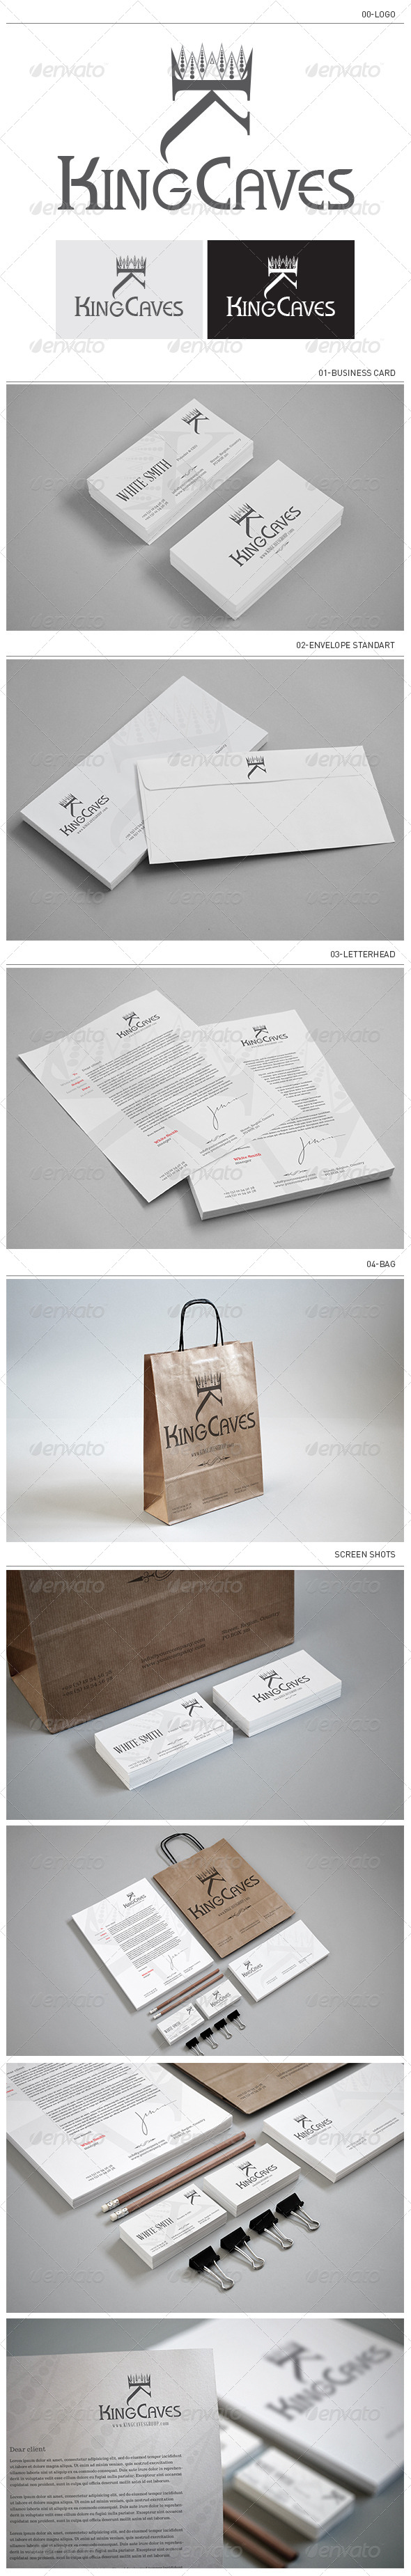 King Caves Corporate Identity - Stationery Print Templates